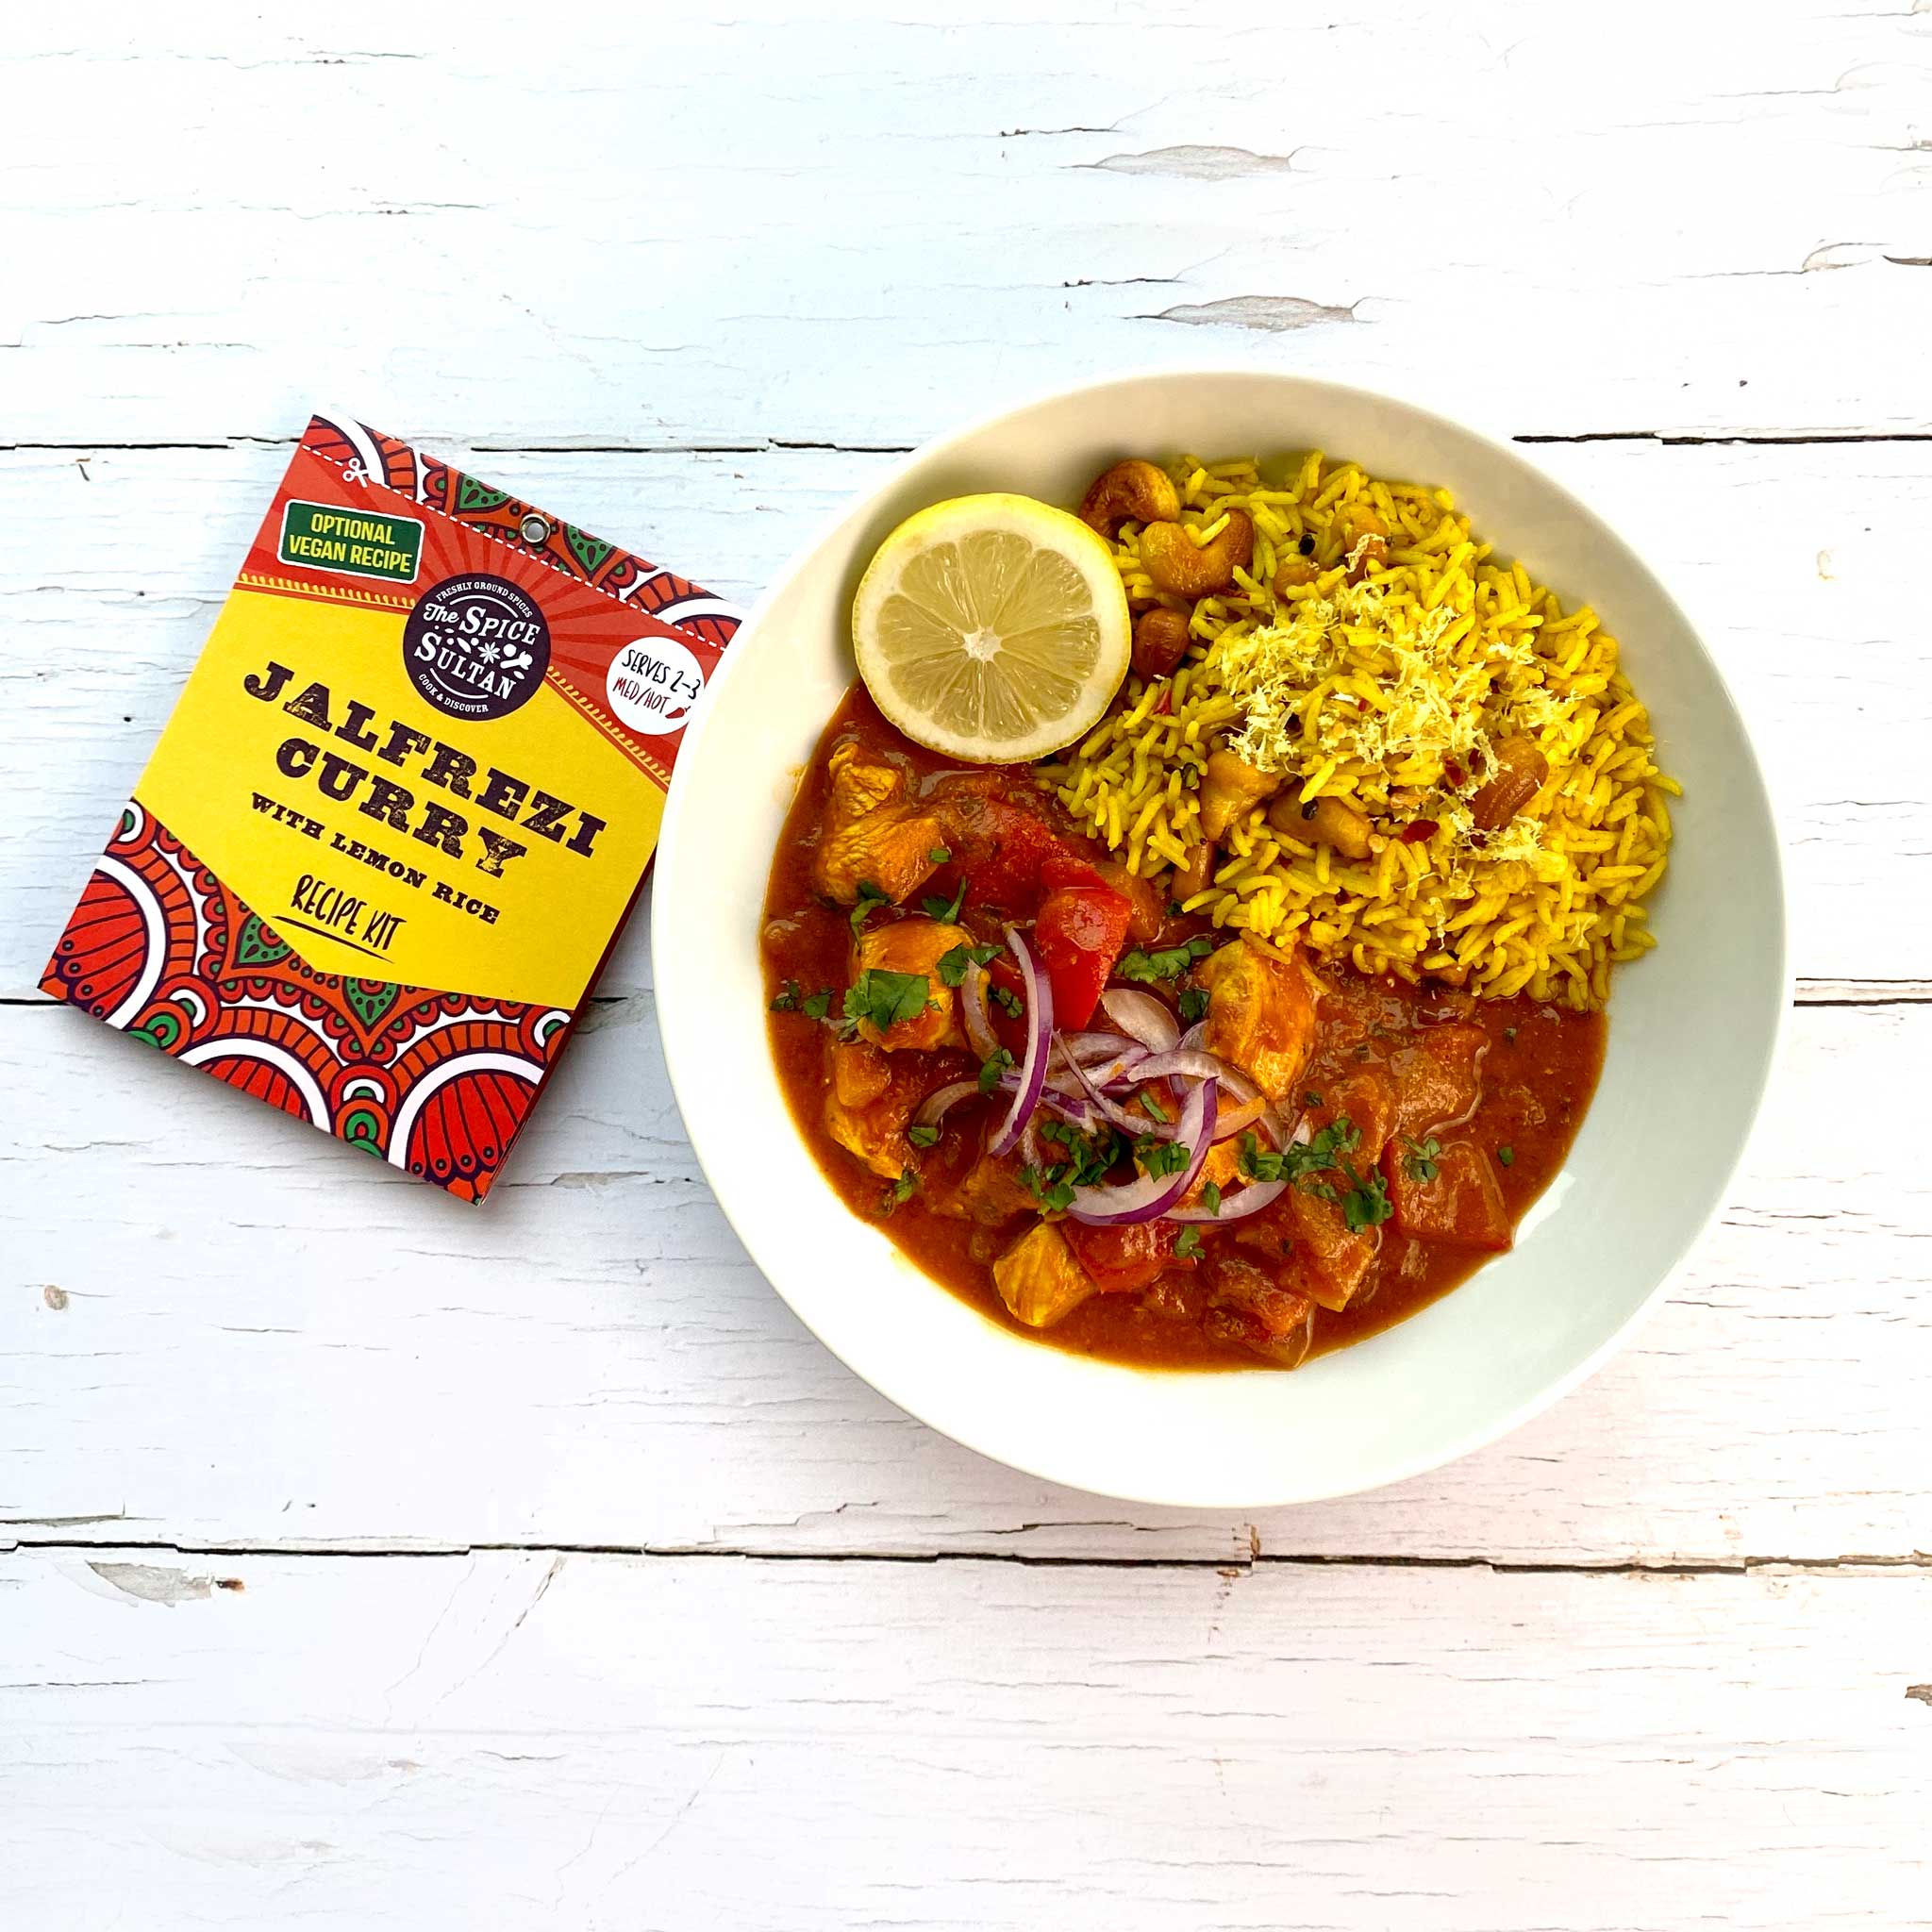 CURRY NIGHT FAVOURITES - SAVER 4 PACK - WOWCHER